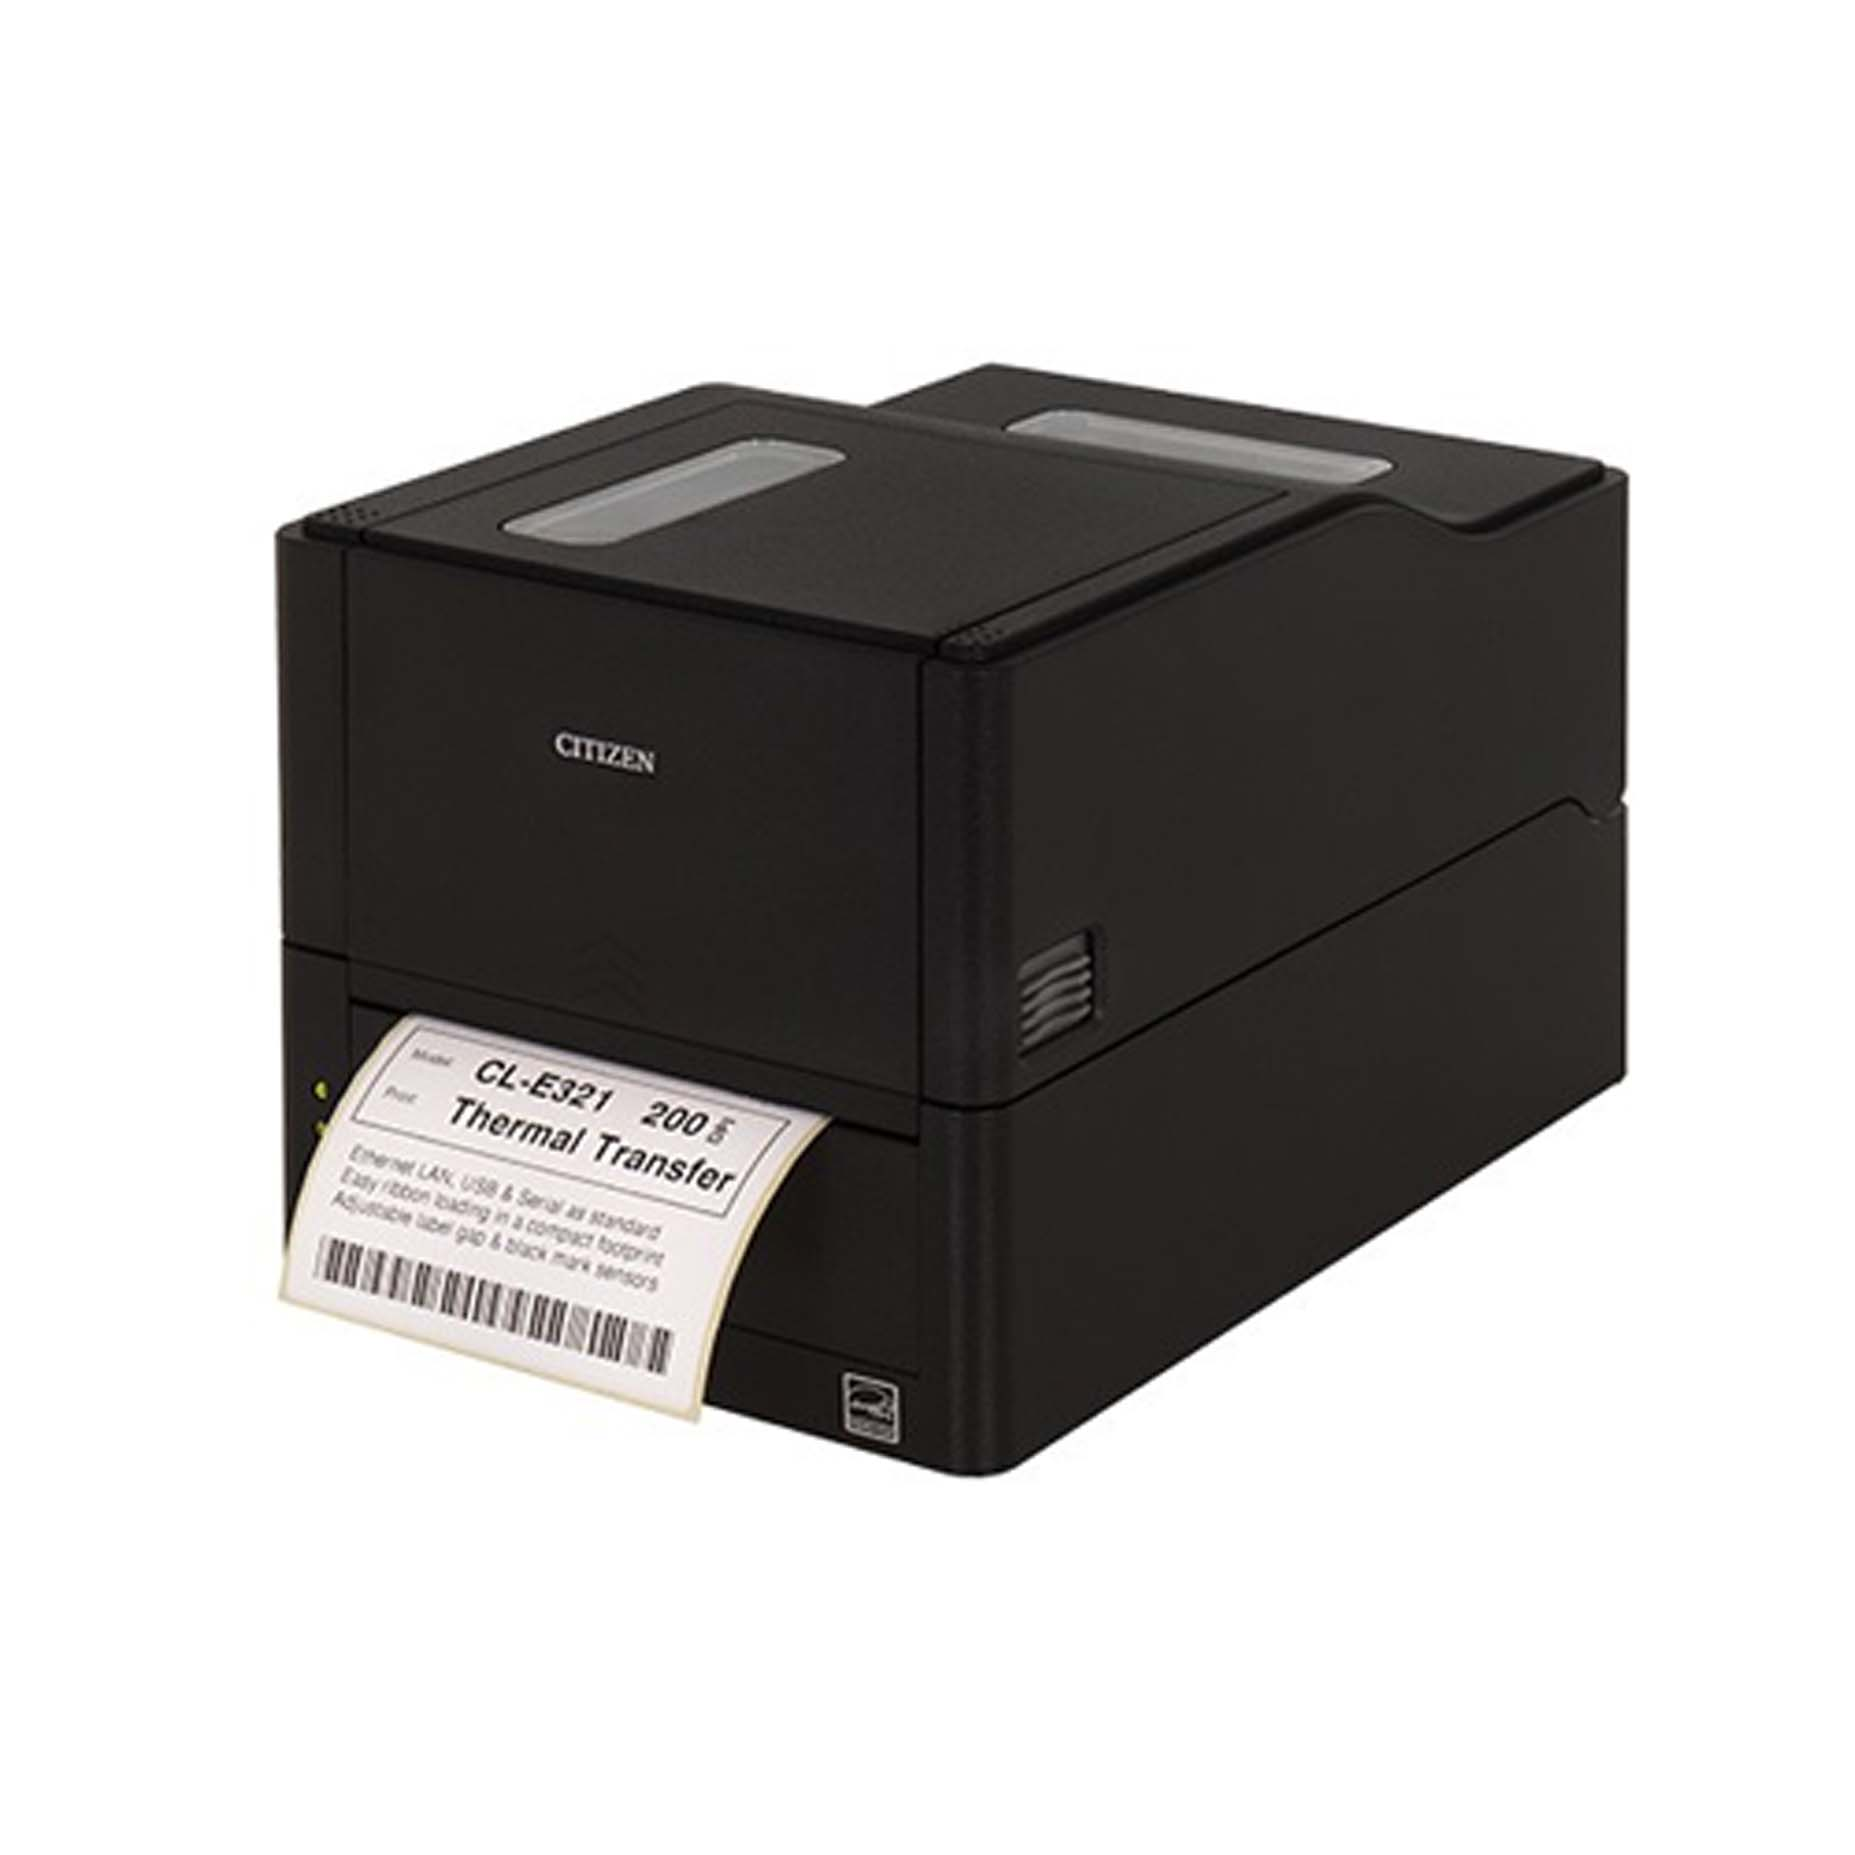 Harga Jual Citizen CL-E321 Label Barcode Printer 203 dpi USB Black